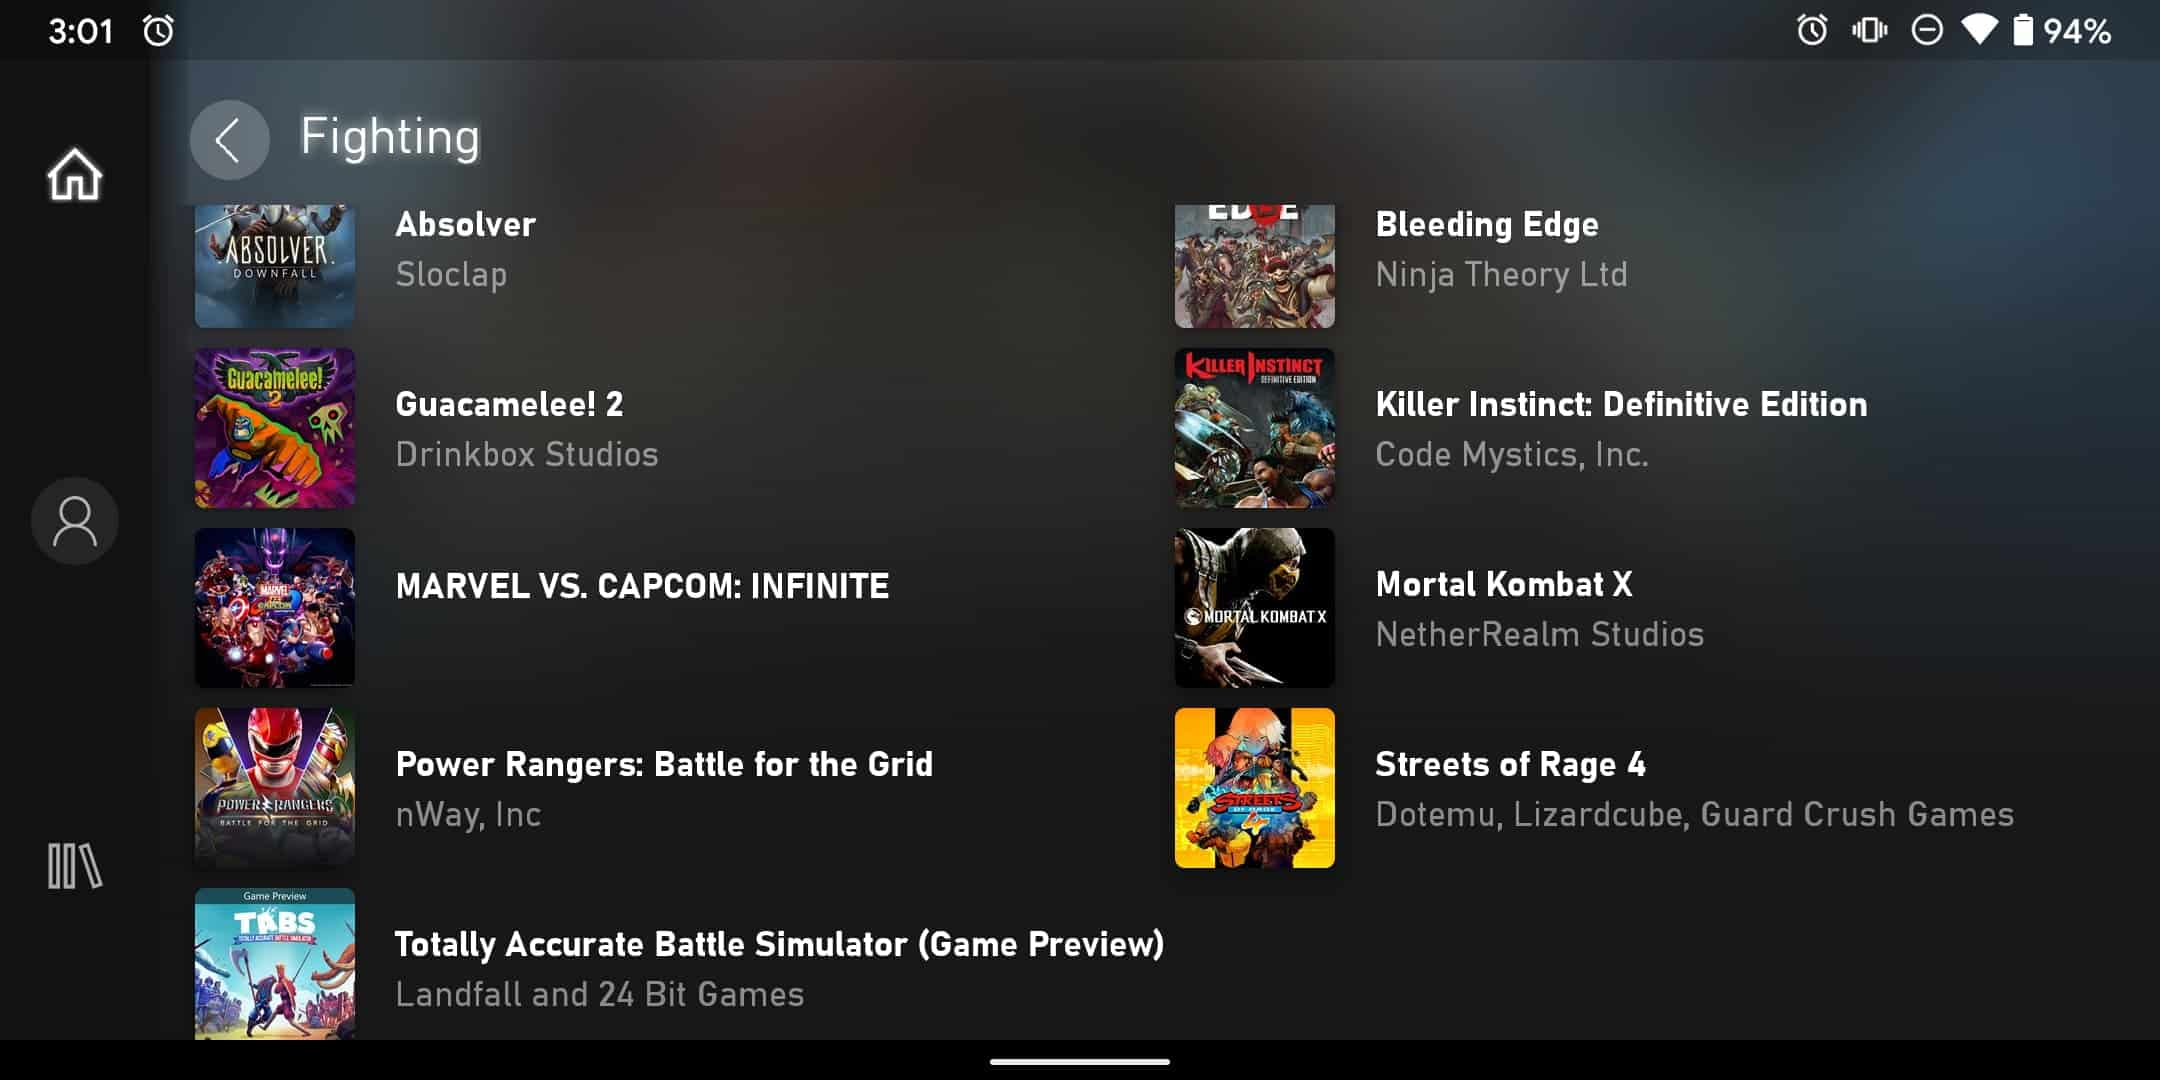 Xbox Game Pass Ultimate on Android 19